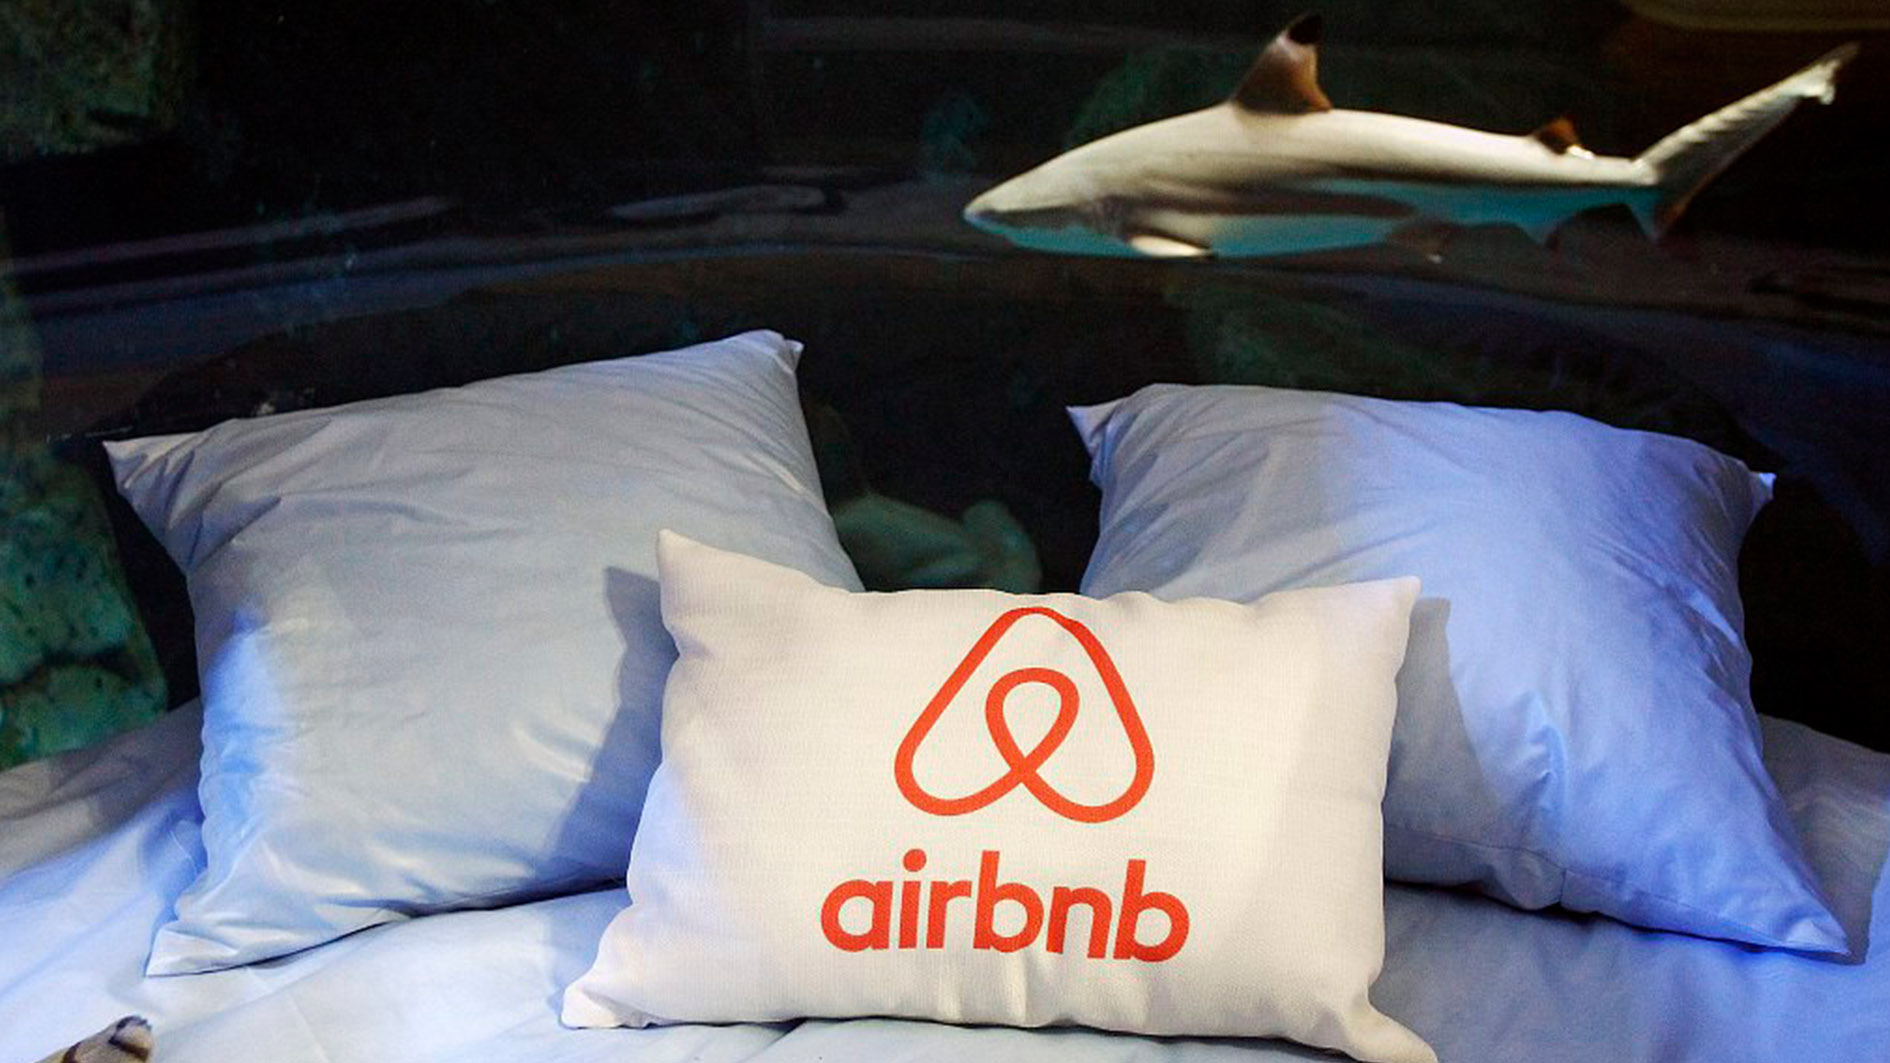 Airbnb to verify listings as deadly incident prompts safety move